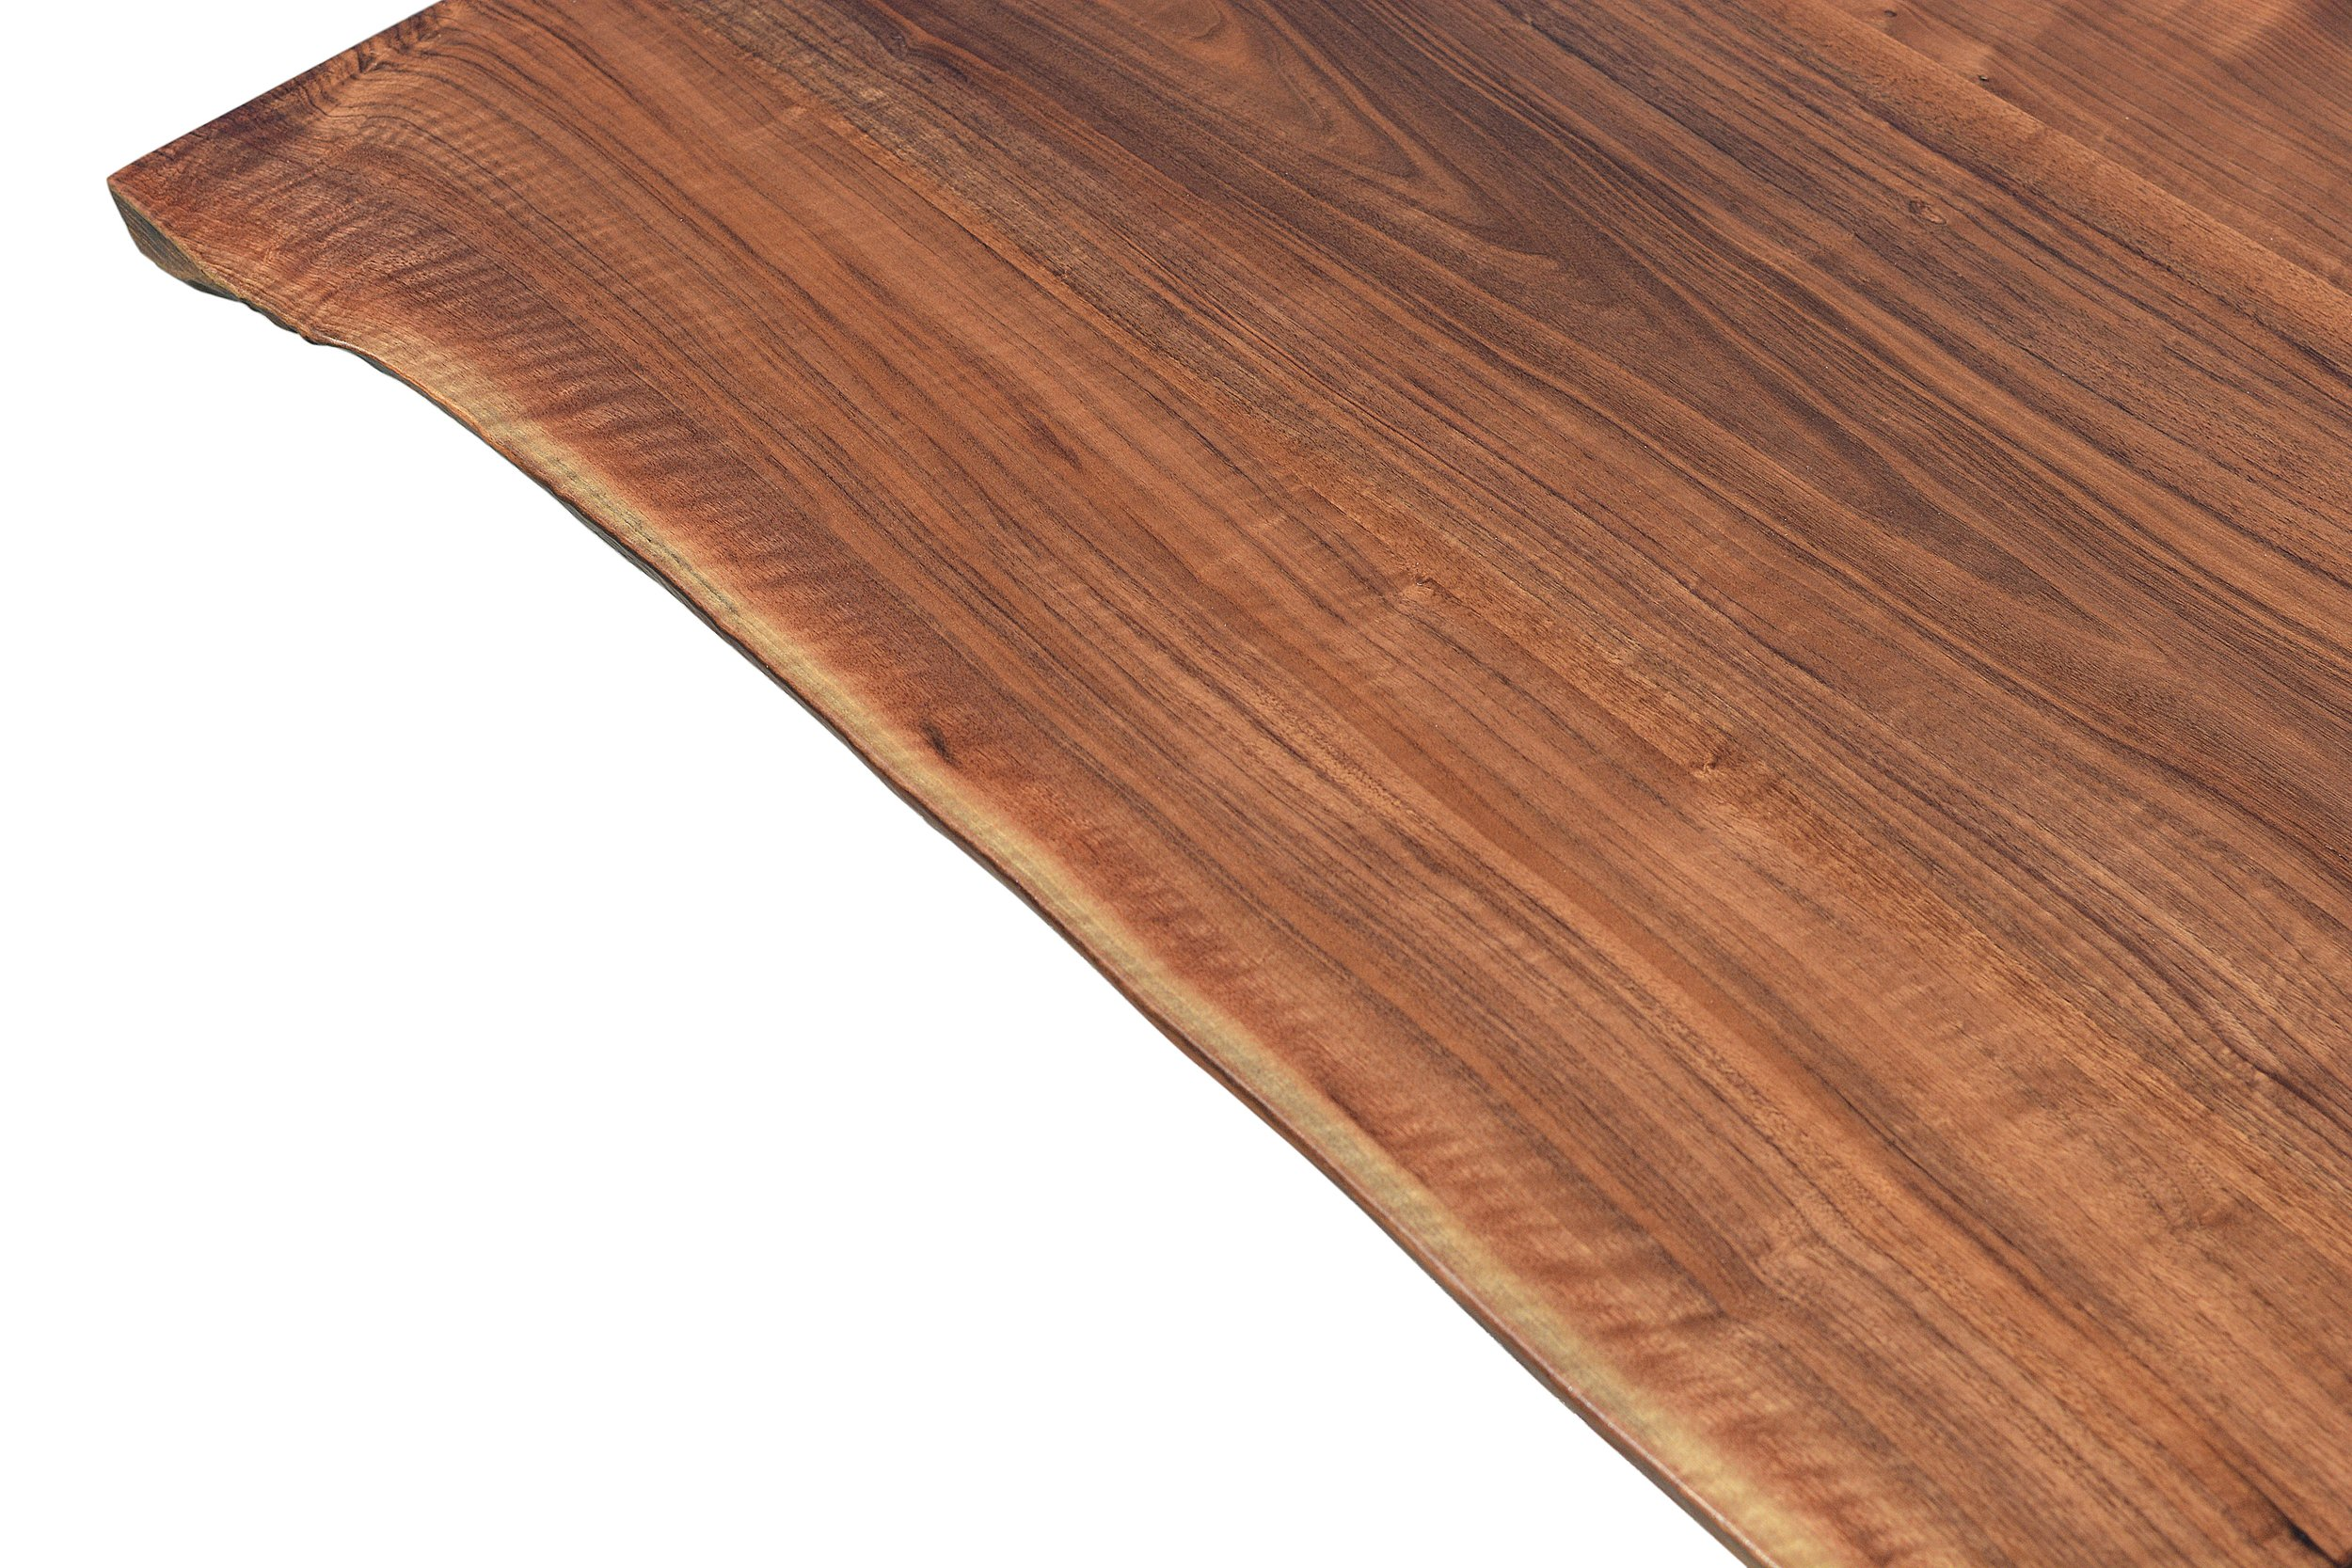 Etz & Steel Iris Live Edge Walnut Coffee Table Close Up 2.JPG